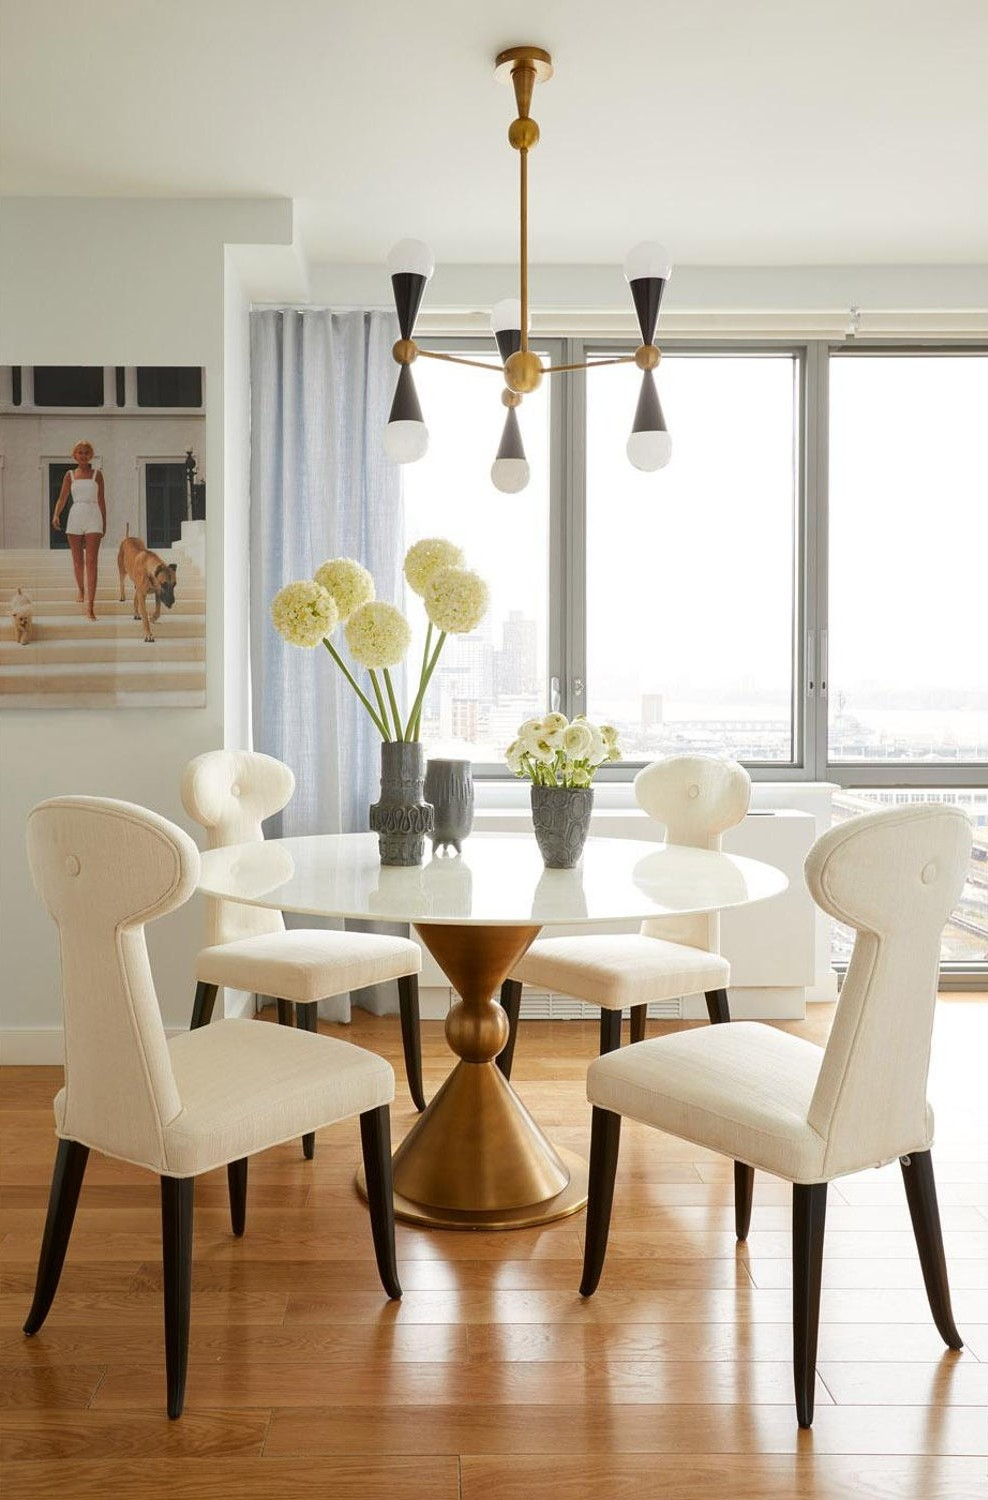 Dining Room Design Inspirations By Jonathan Adler (5)